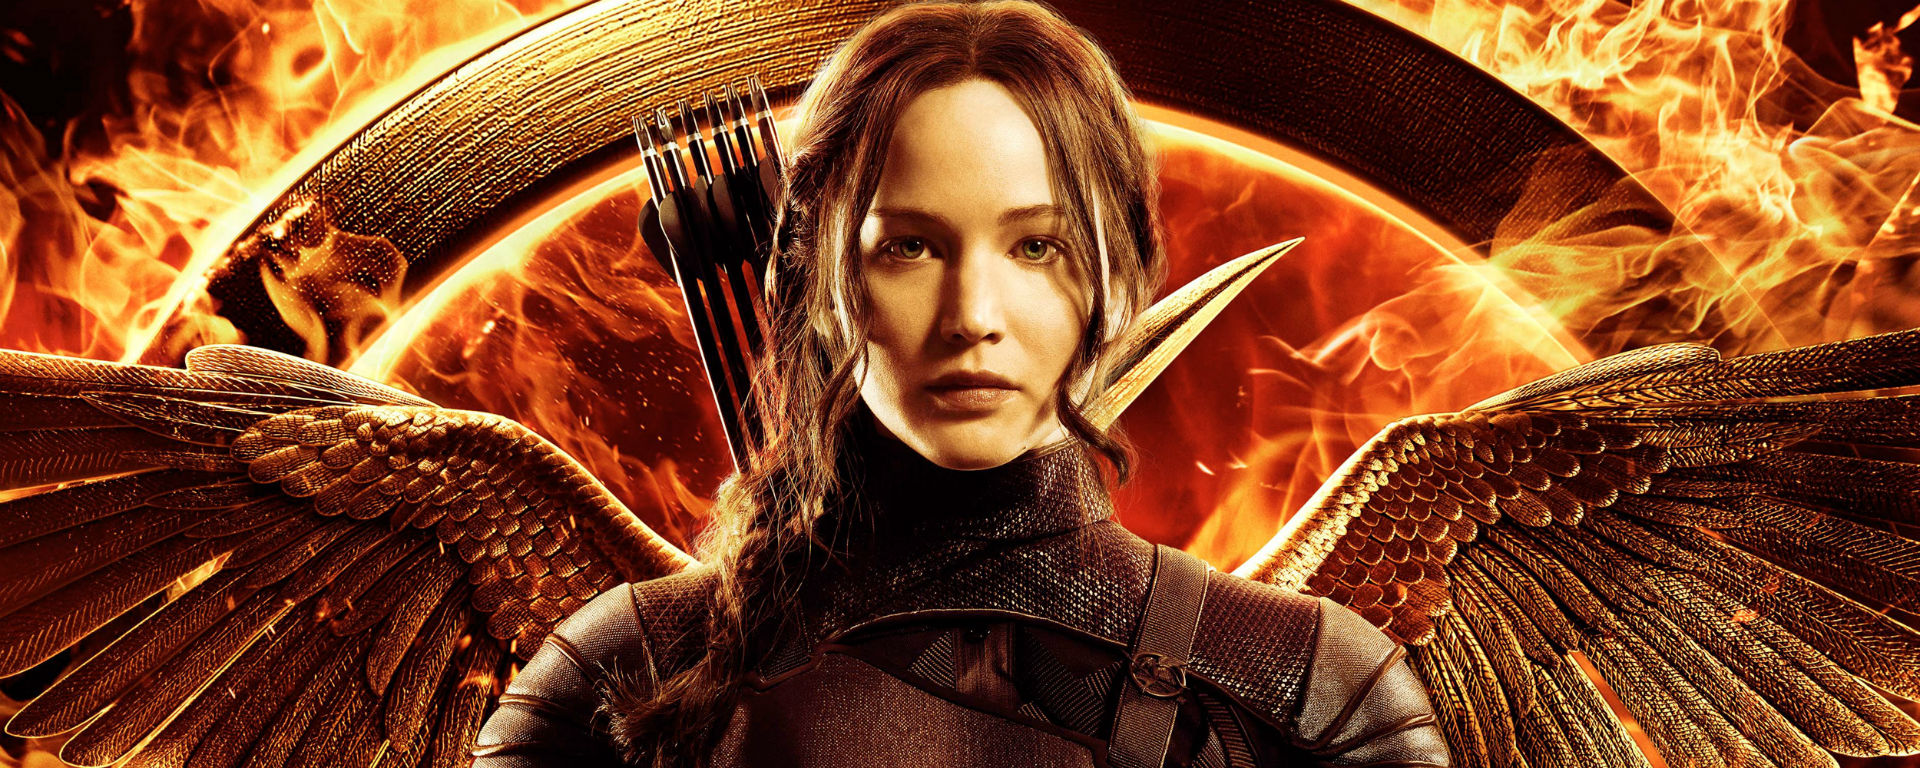 the hunger games mockingjay part 1 movie review feature image